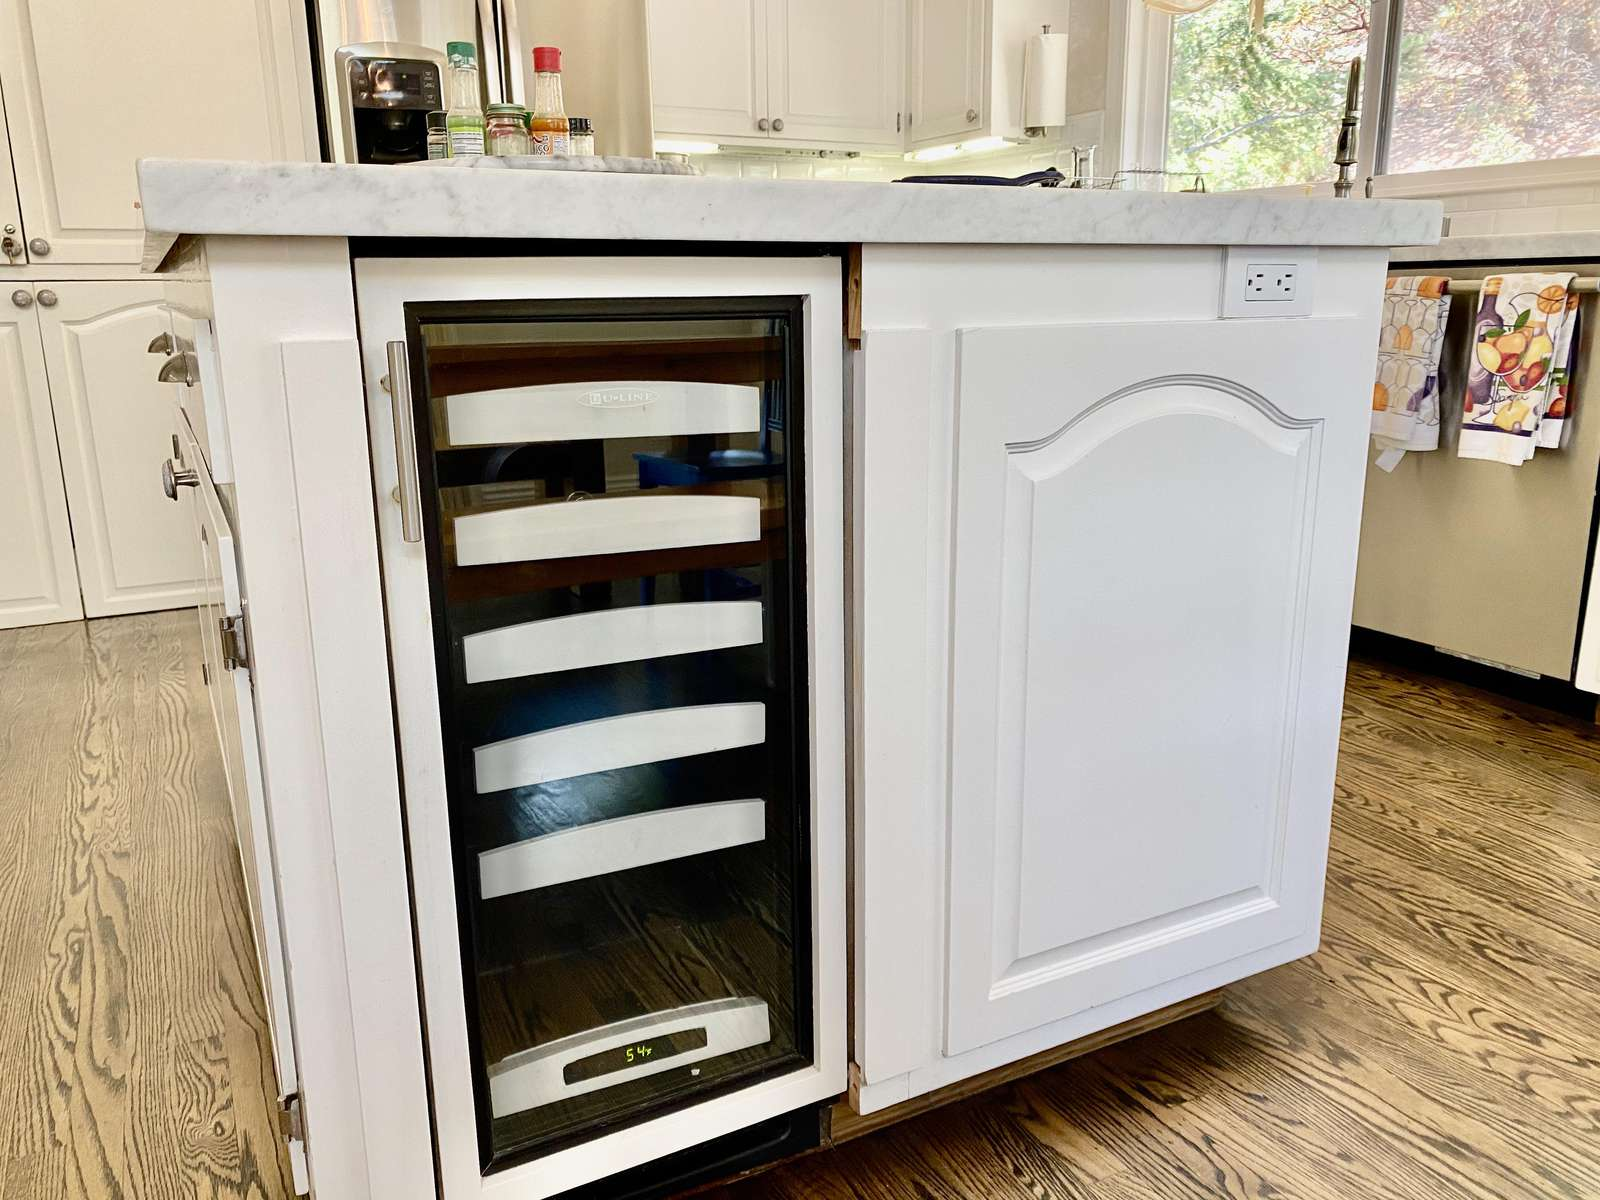 Places to store your daily tastings!